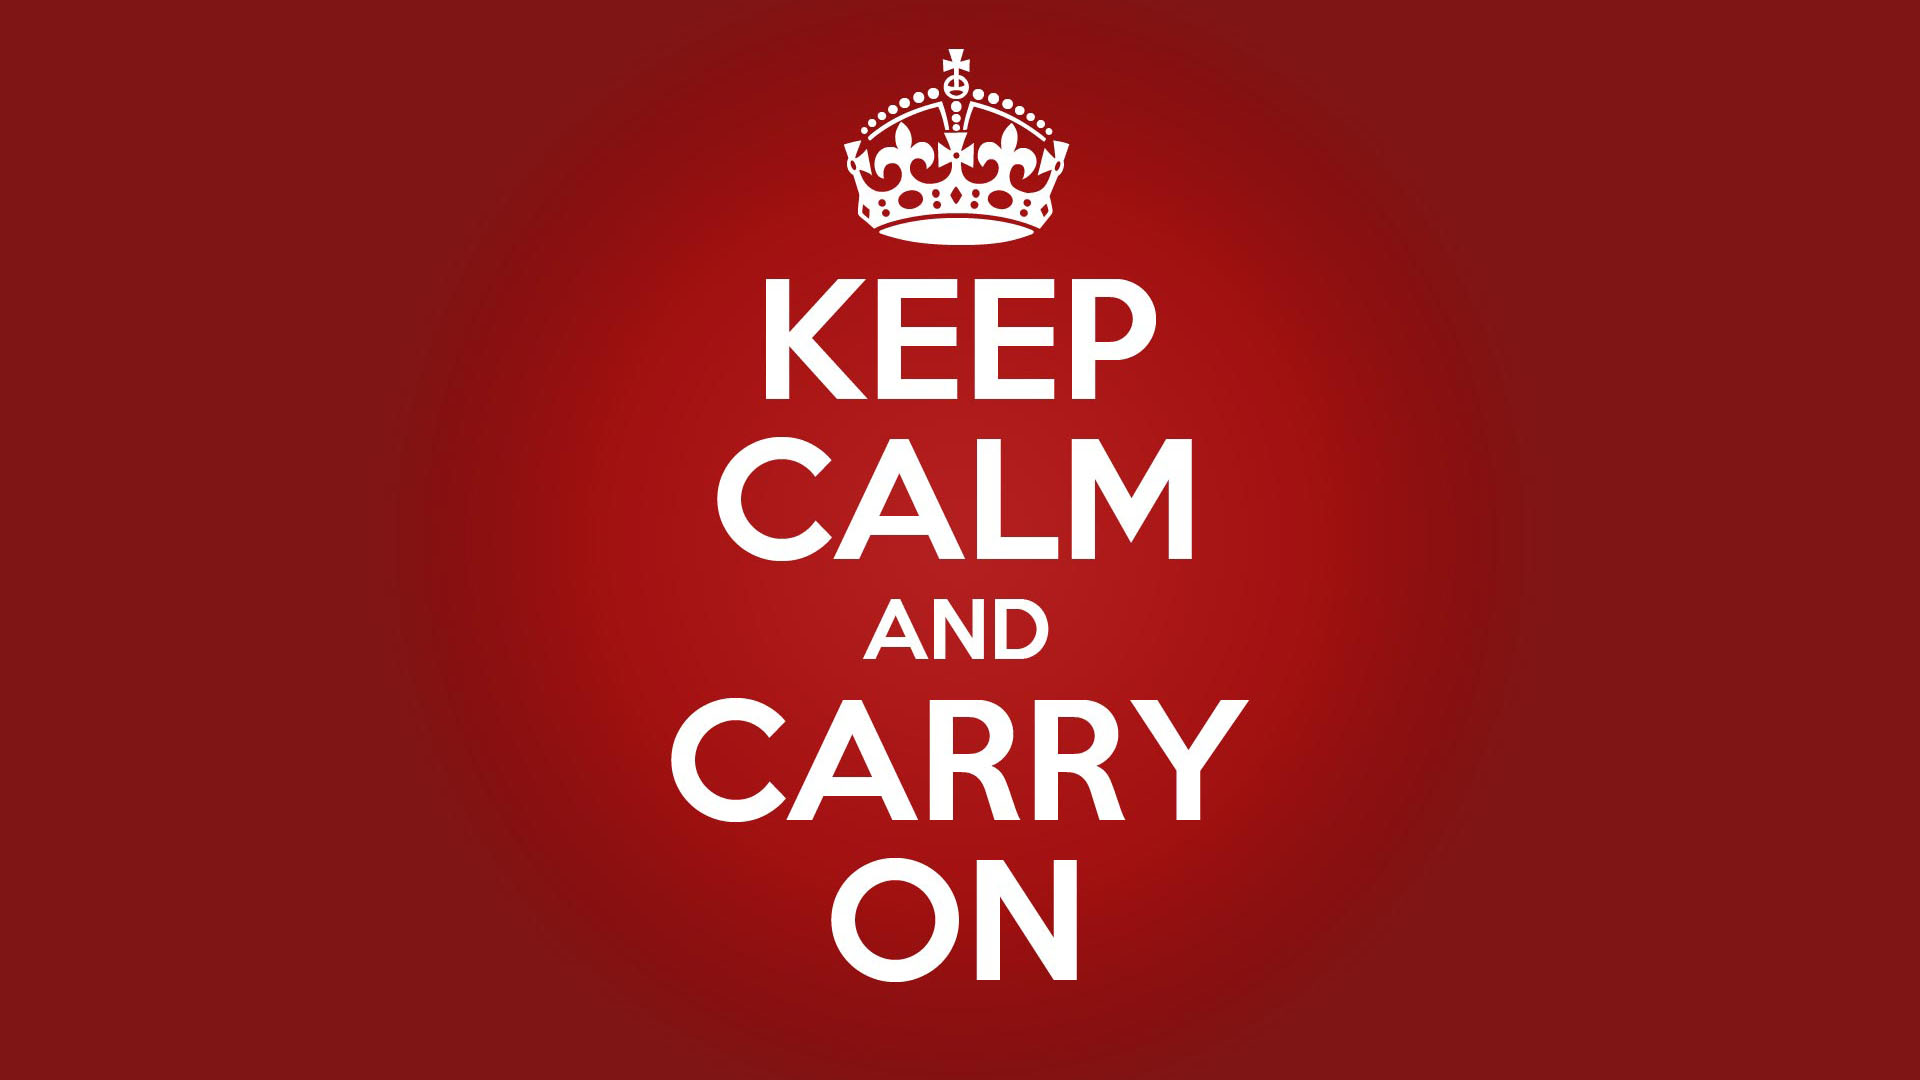 keepcalm keep calm and carry on know your meme,Keep Calm Memes